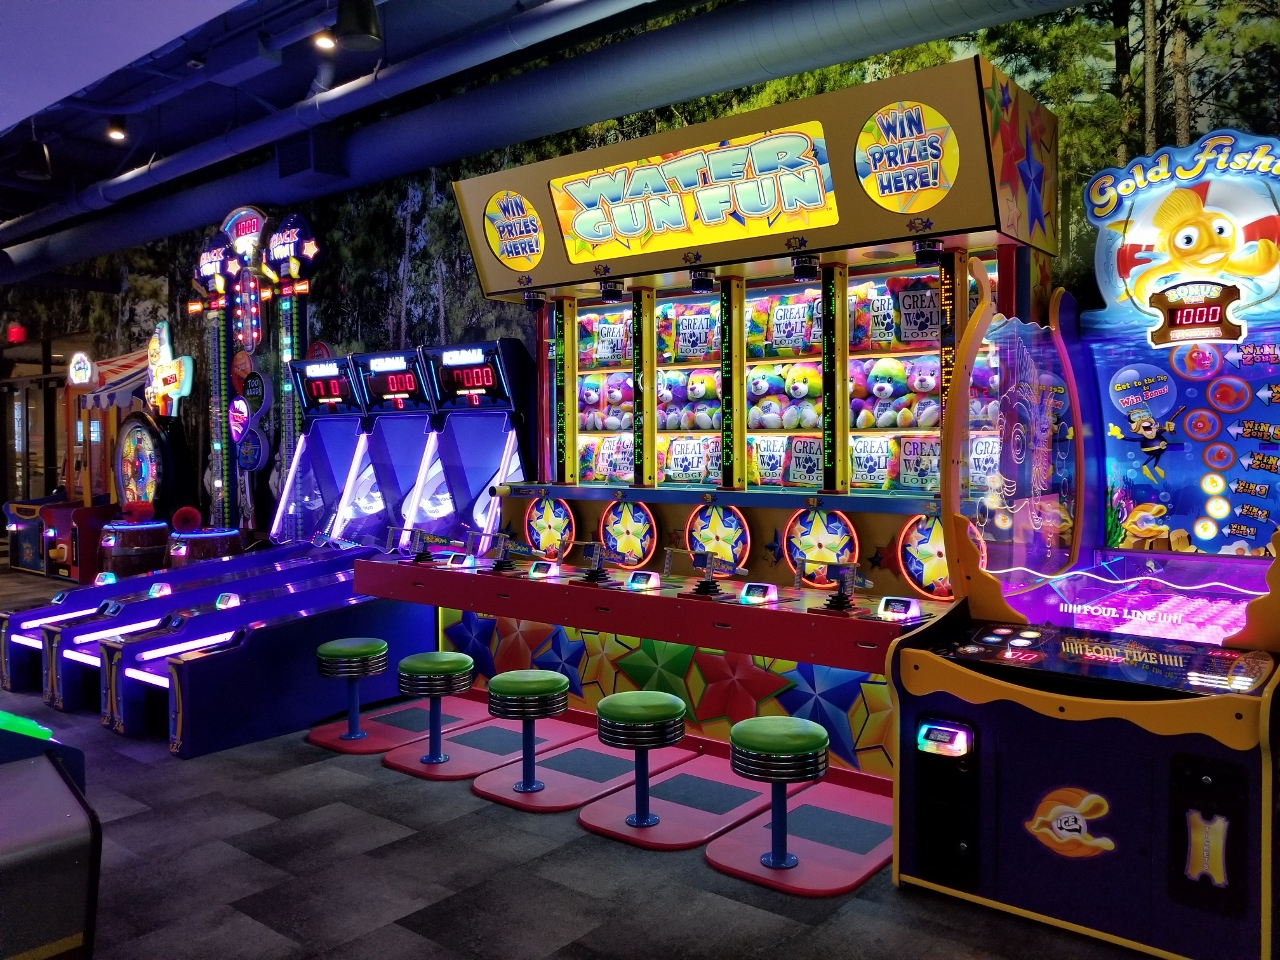 A section of the arcade at great wolf lodge in bloomington minnesota